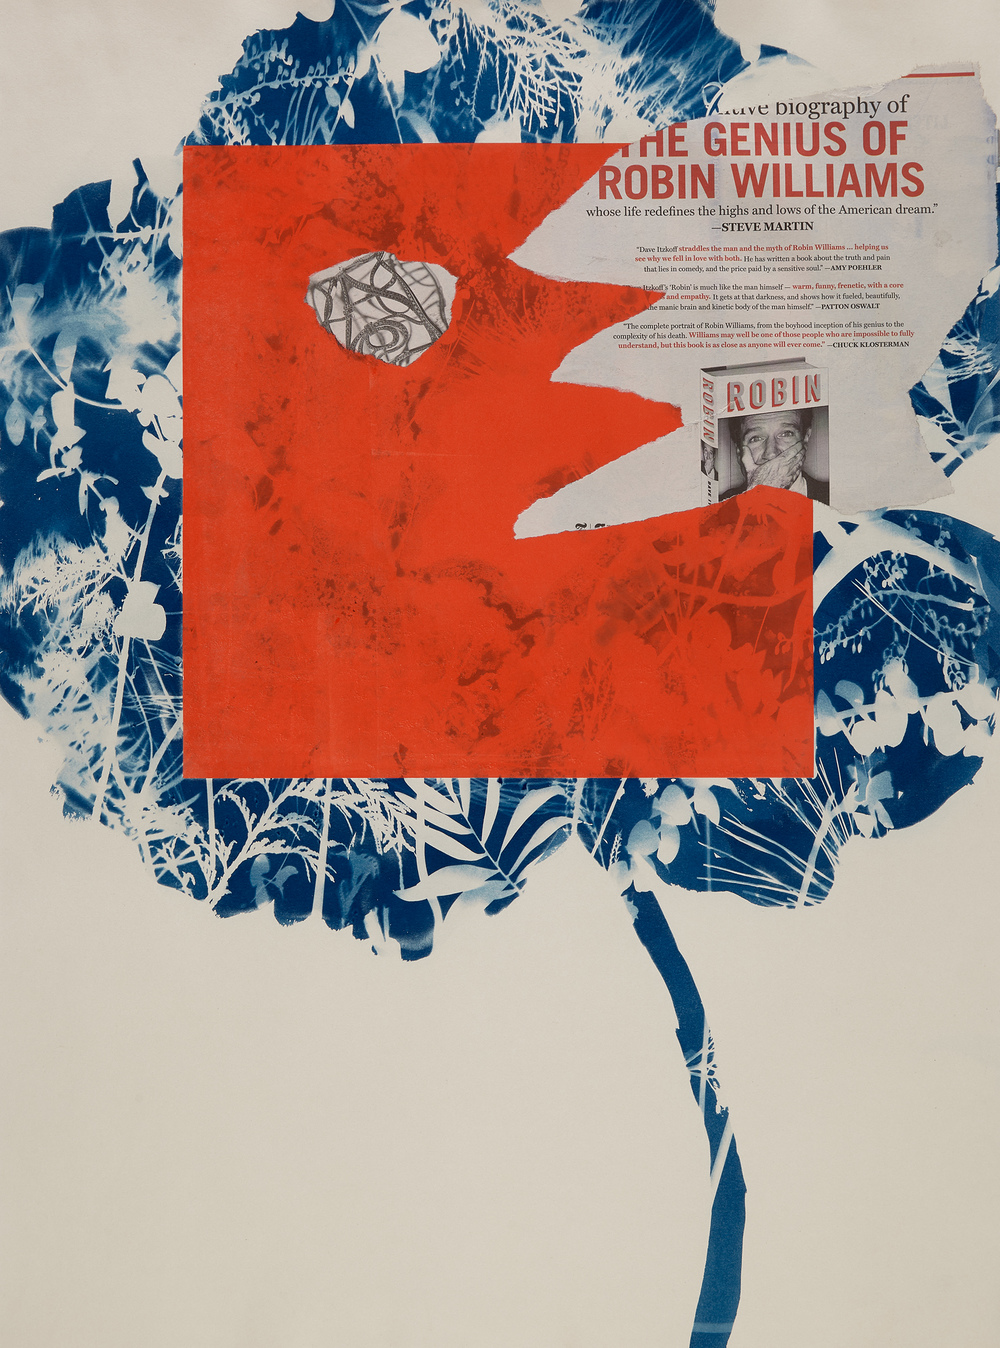 Cynthia MacCollum Ephemera Cyanotype, monotype, chine collet